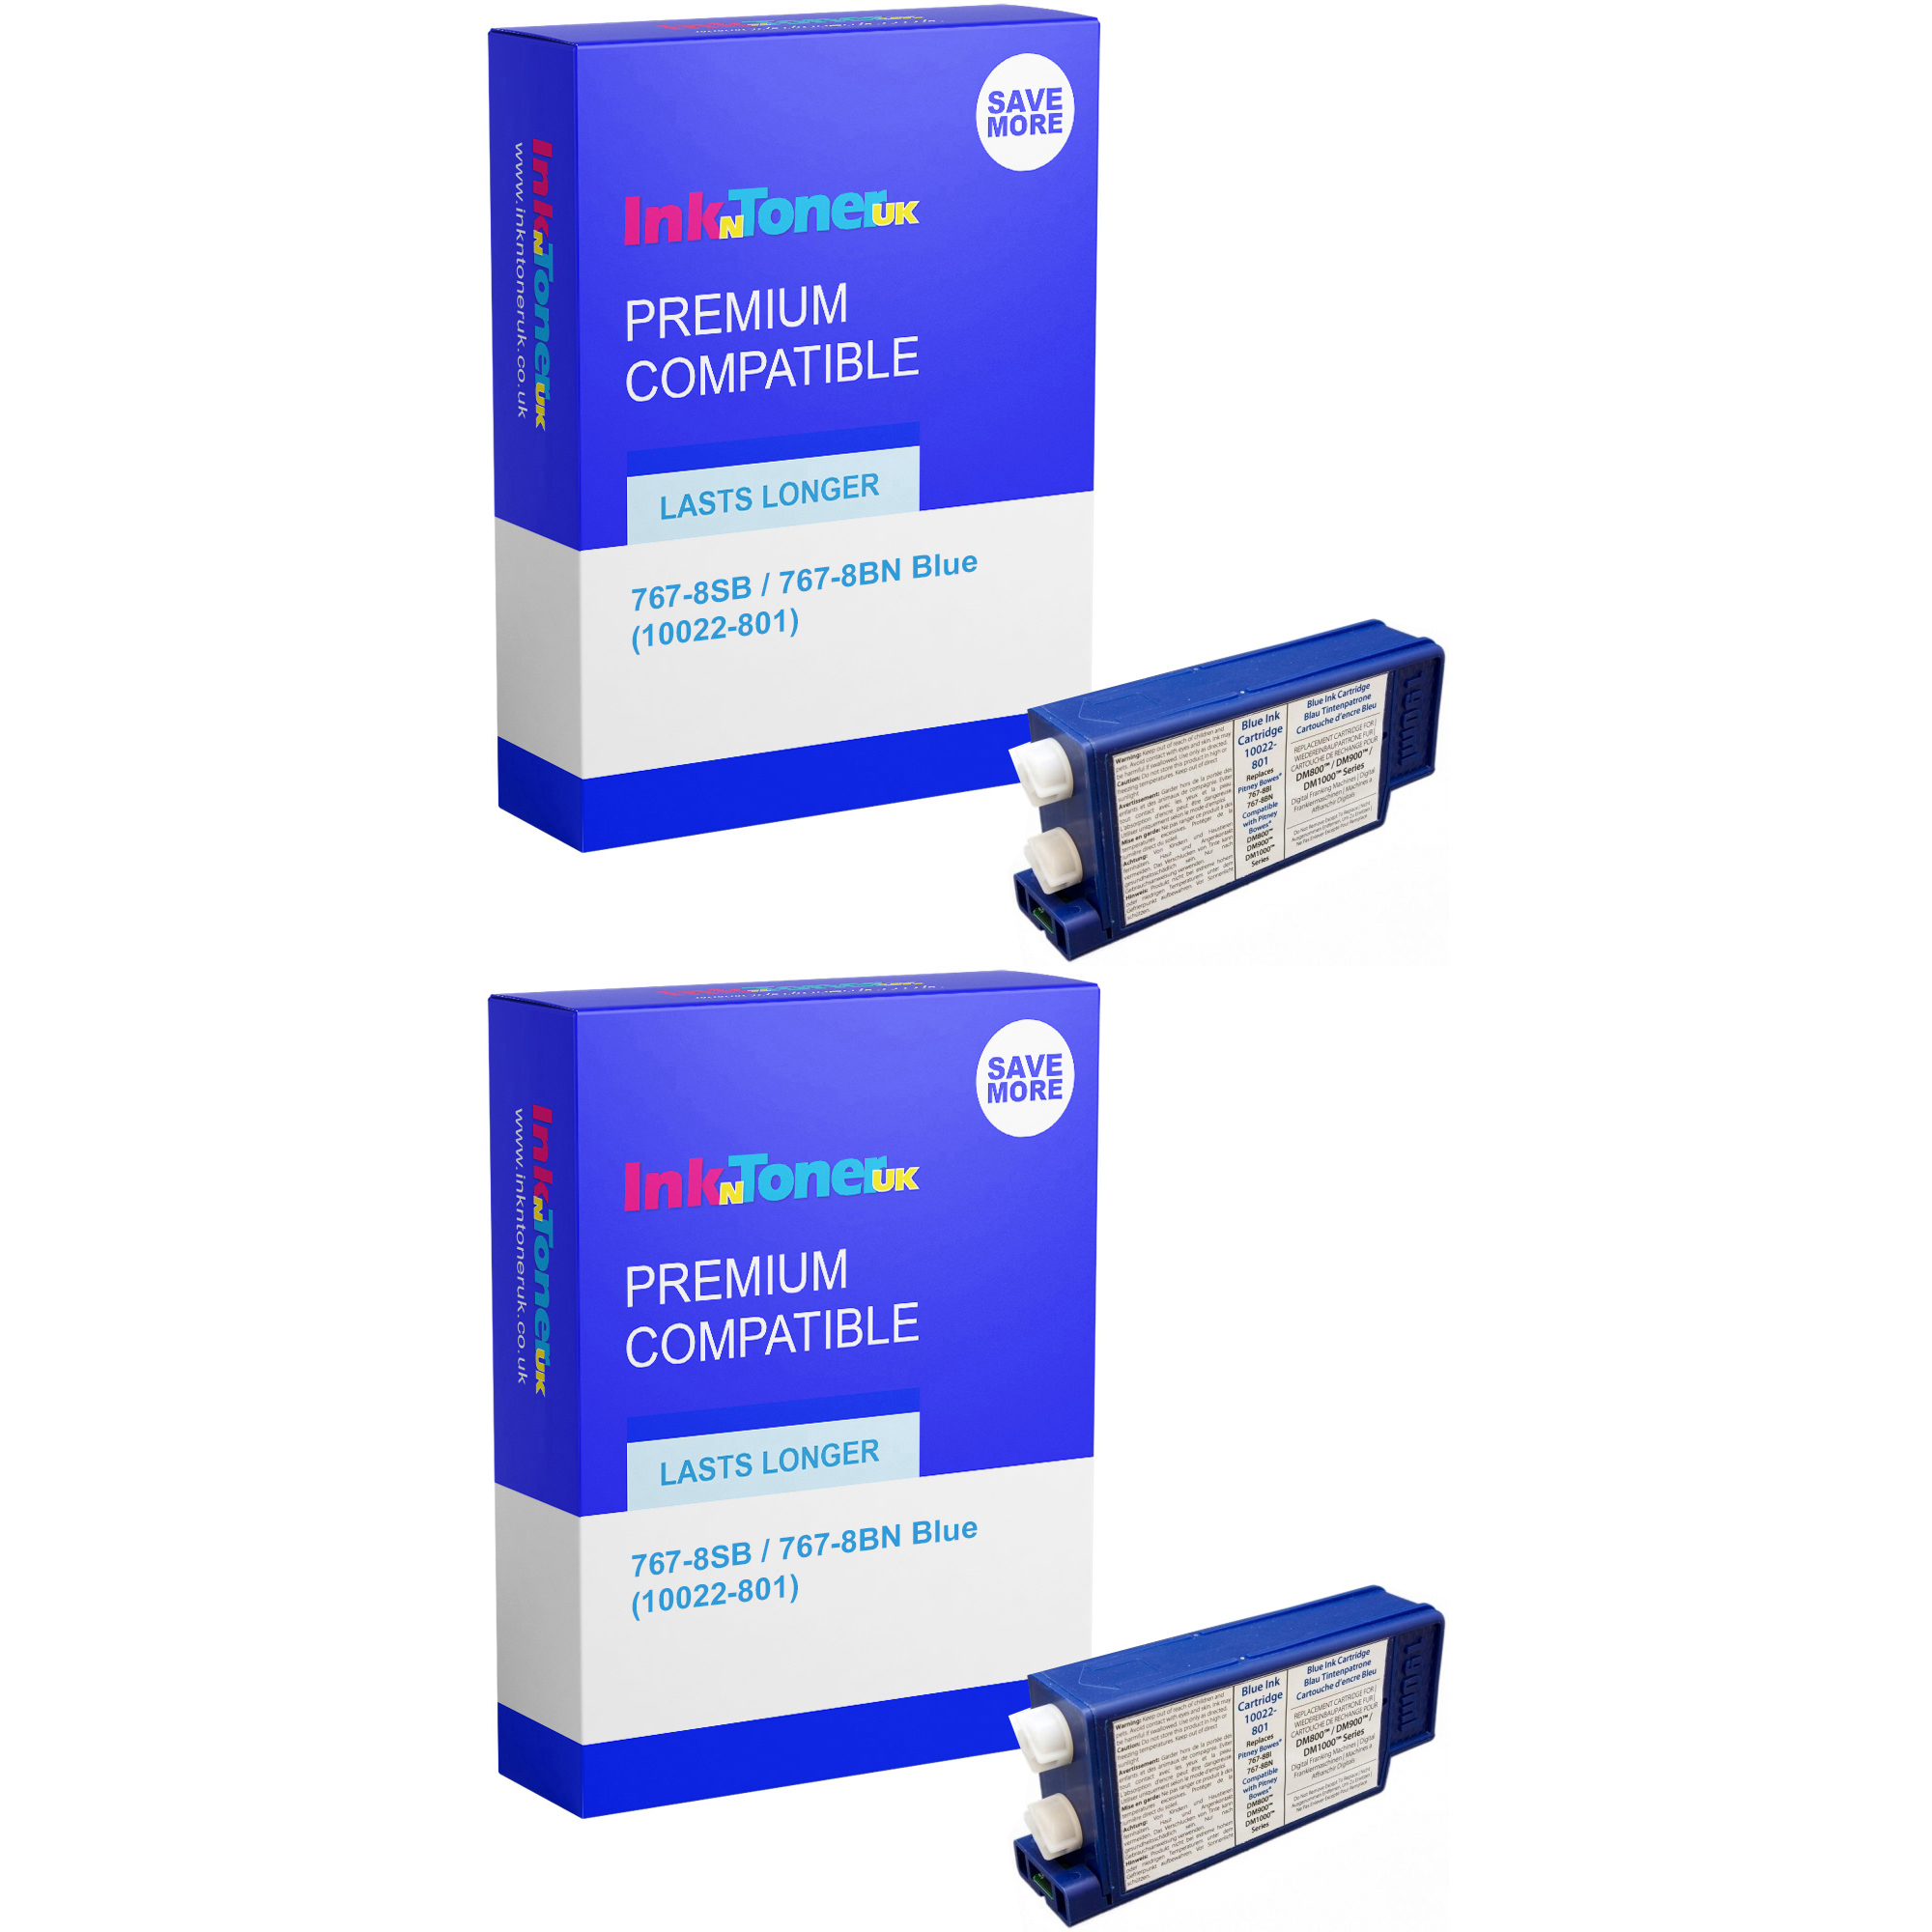 Premium Compatible Pitney Bowes 767-8SB / 767-8BN Blue Twin Pack Franking Ink Cartridges (10022-801)